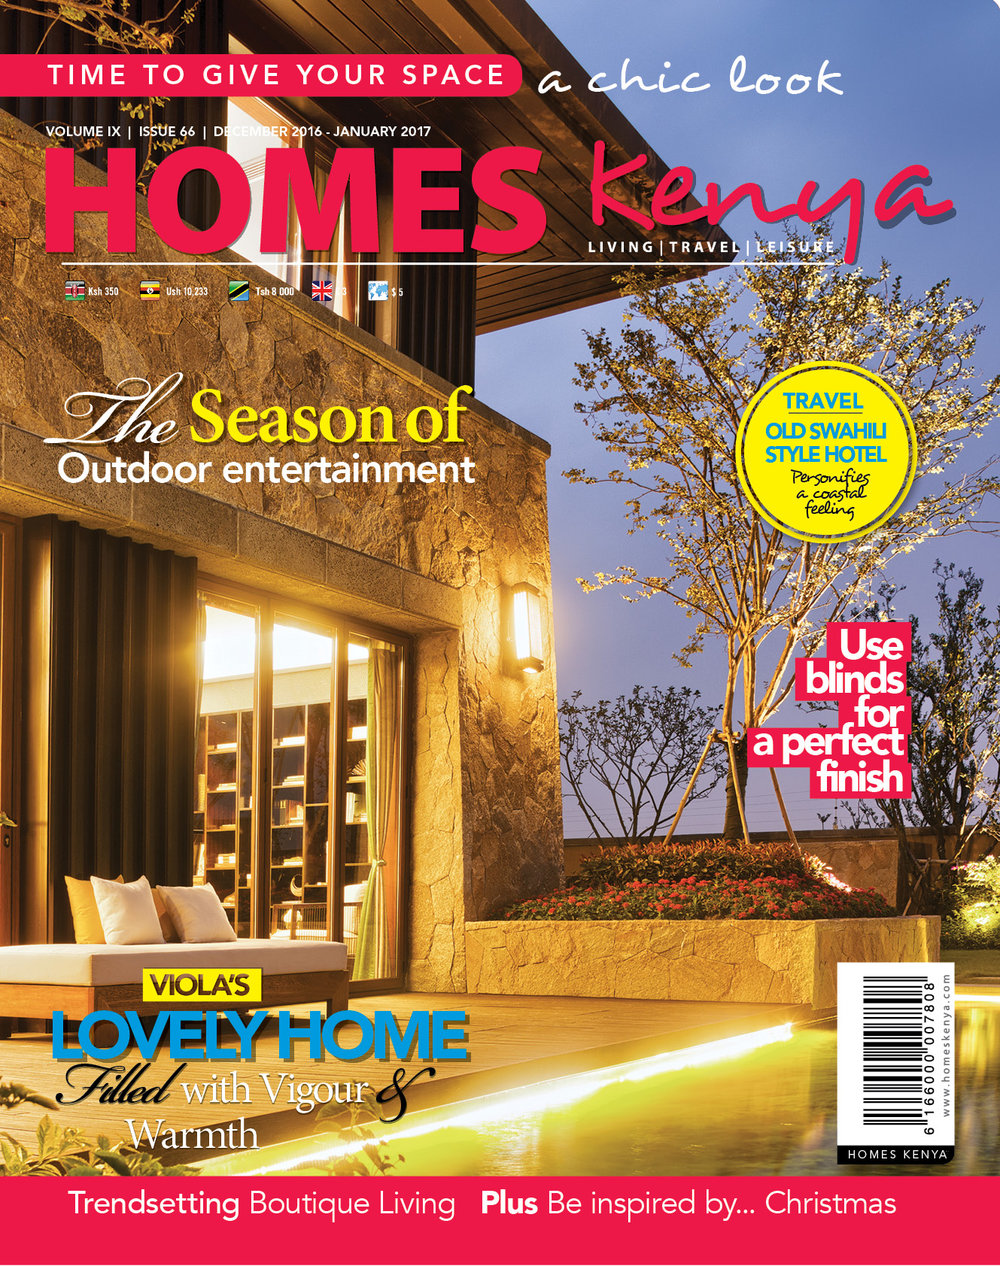 Homes Kenya Dec Jan front cover Maisha inspiration.jpg